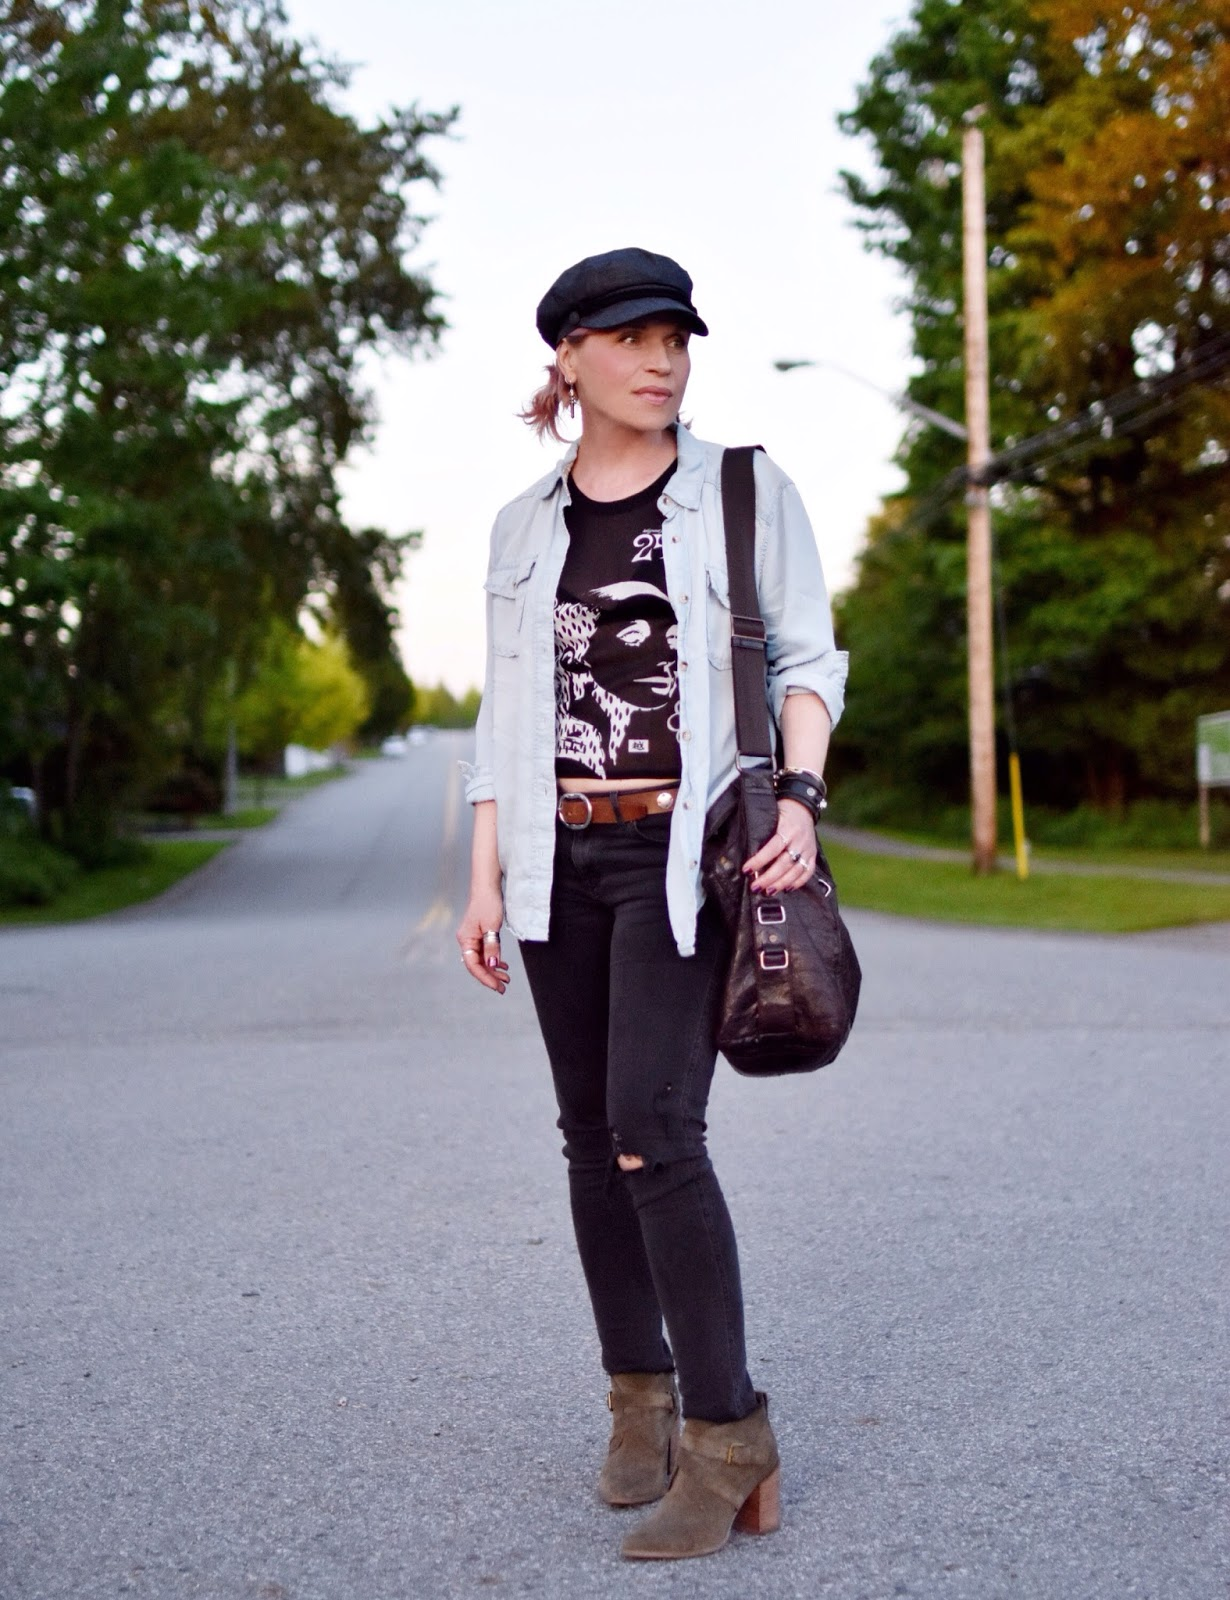 Nouveau rodeo:  layered graphic top and chambray shirt with skinny jeans, ankle boots, and a baker boy cap